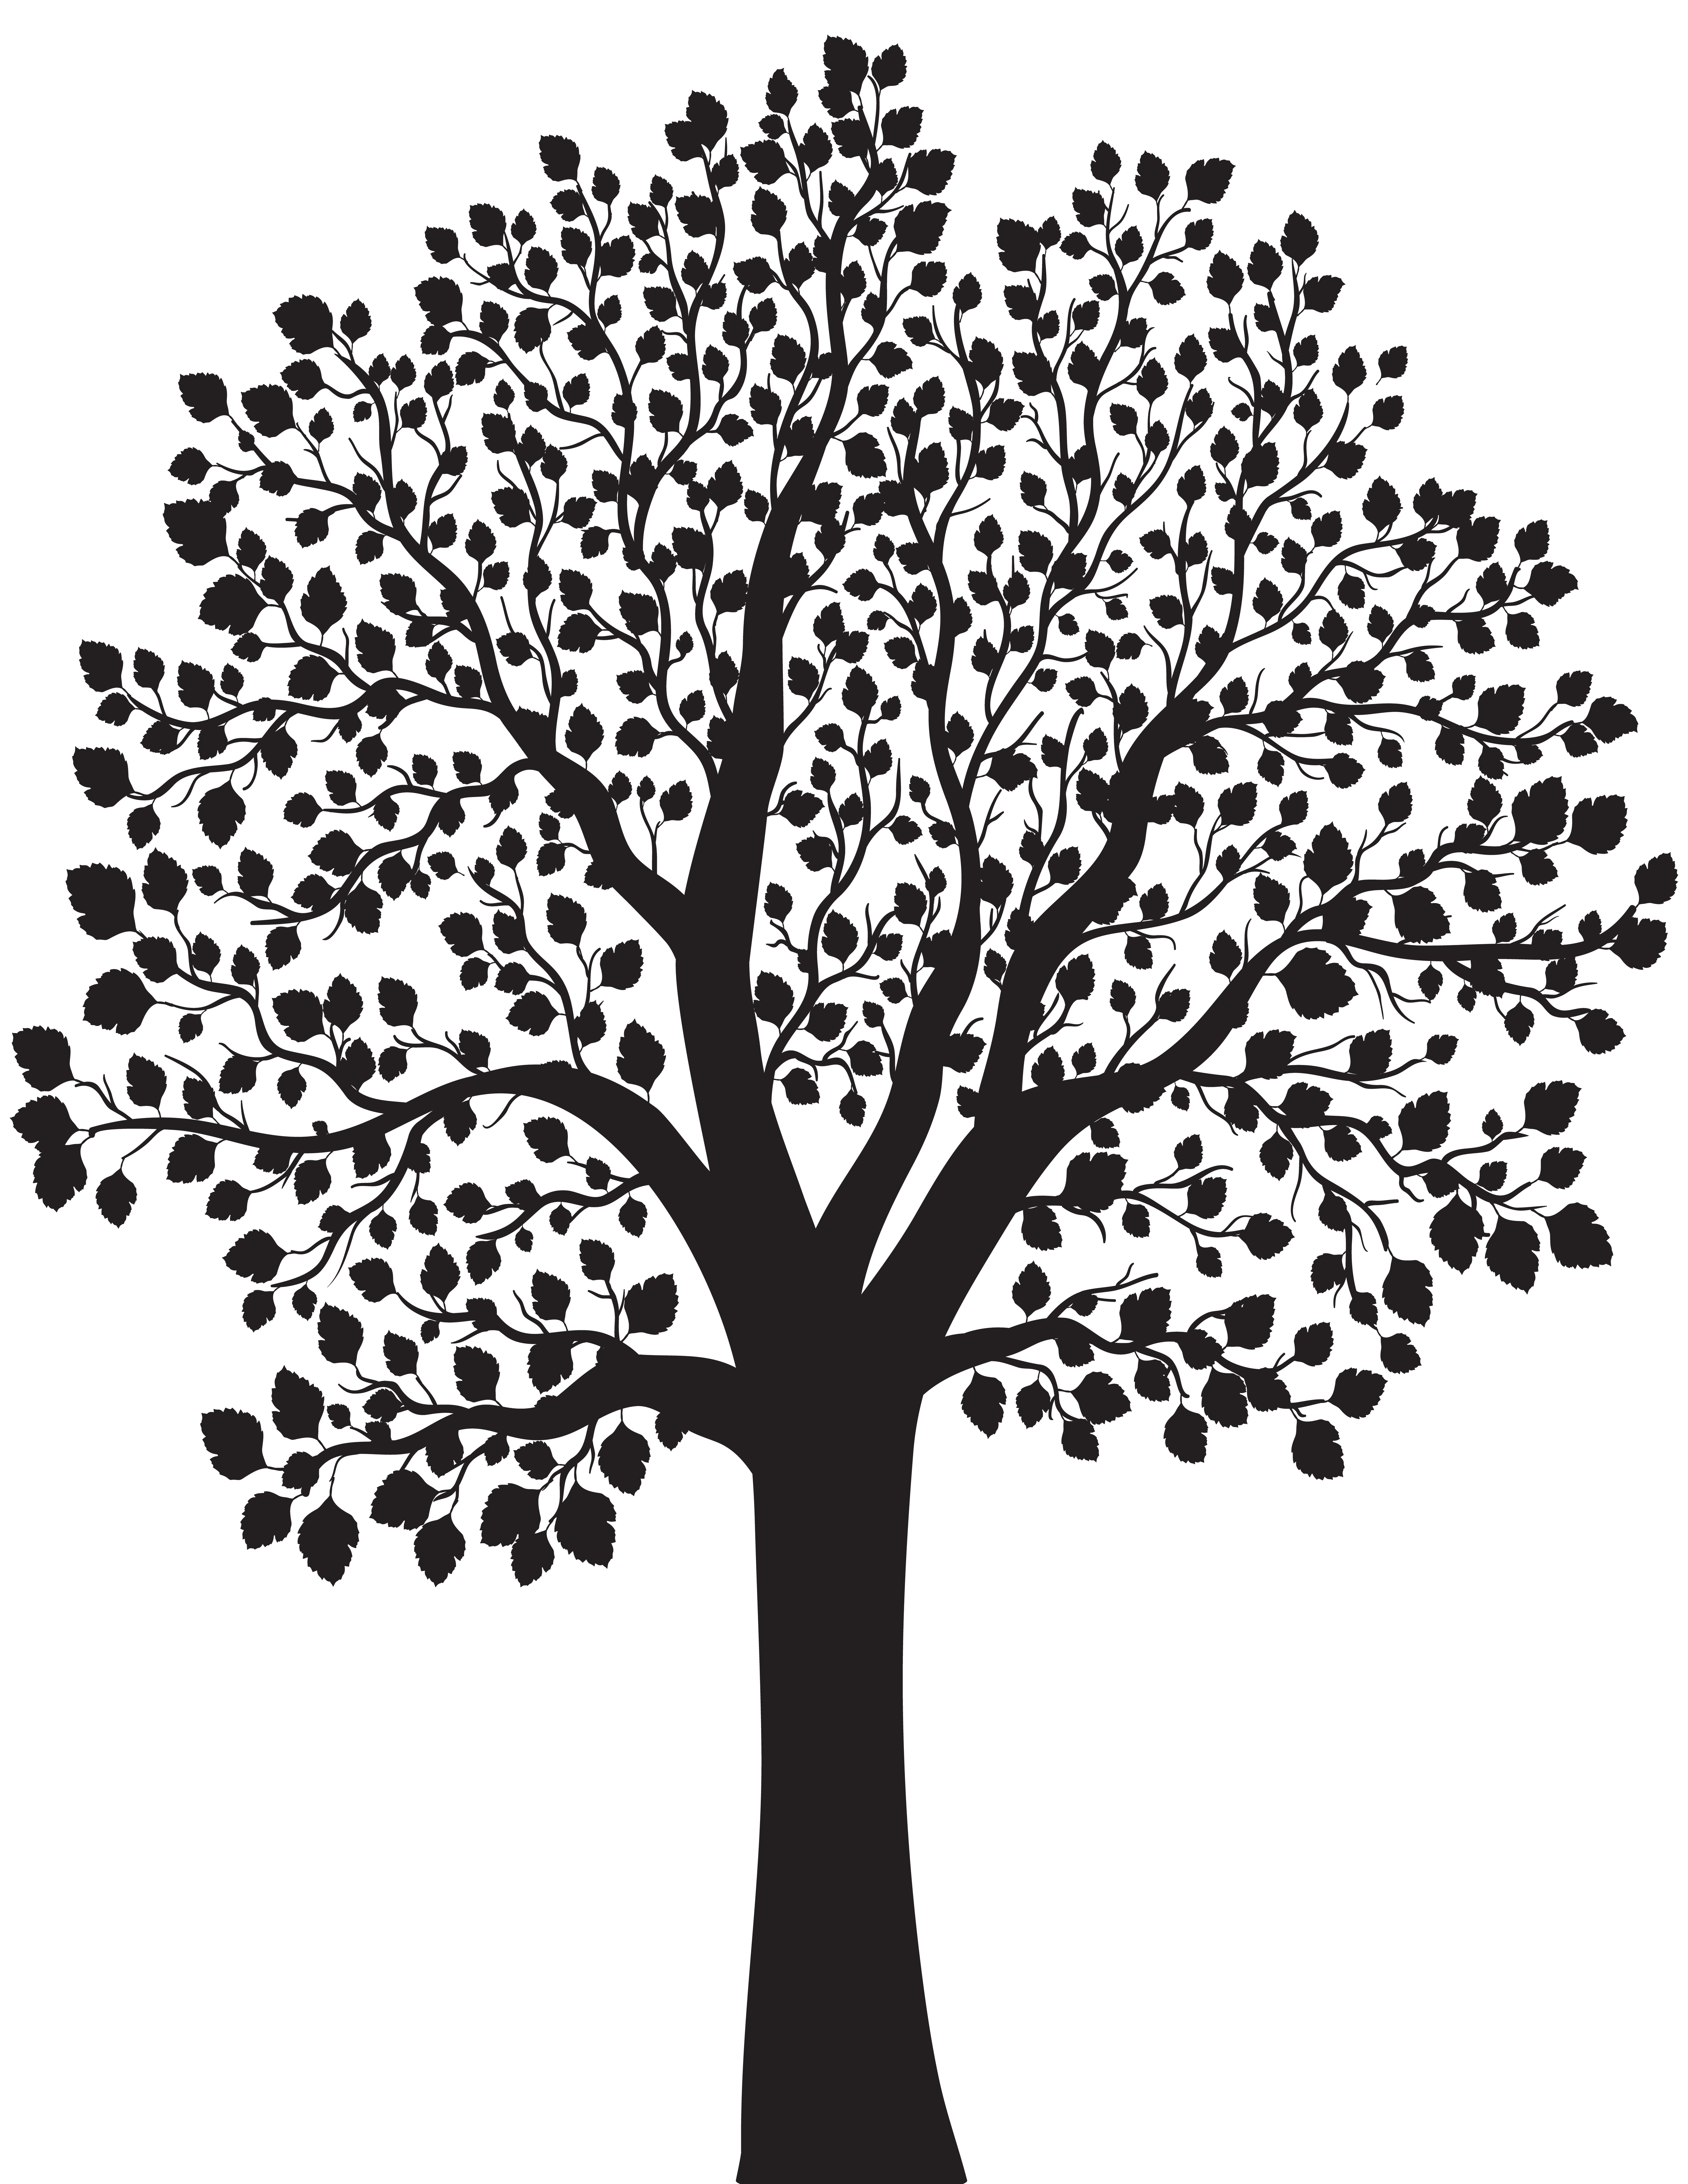 Tree silhouette clipart clip free download Tree Silhouette PNG Clip Art Image | Gallery Yopriceville - High ... clip free download